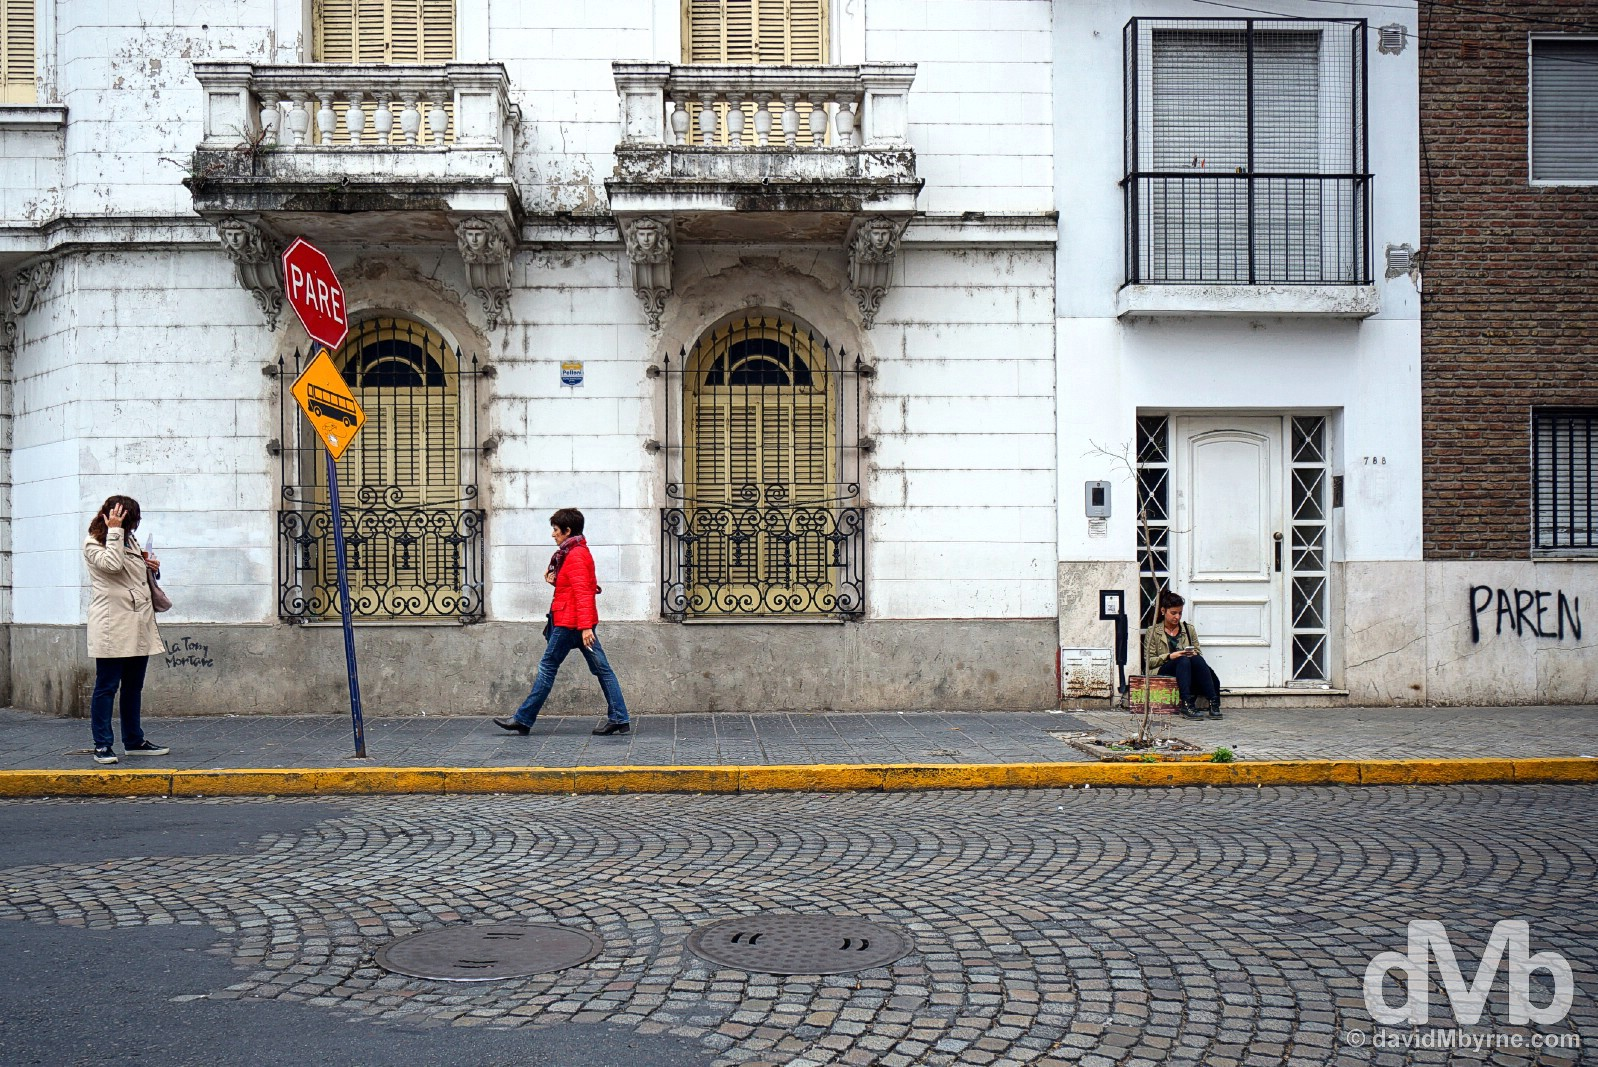 On the streets of Rosario, Argentina. September 22, 2015.